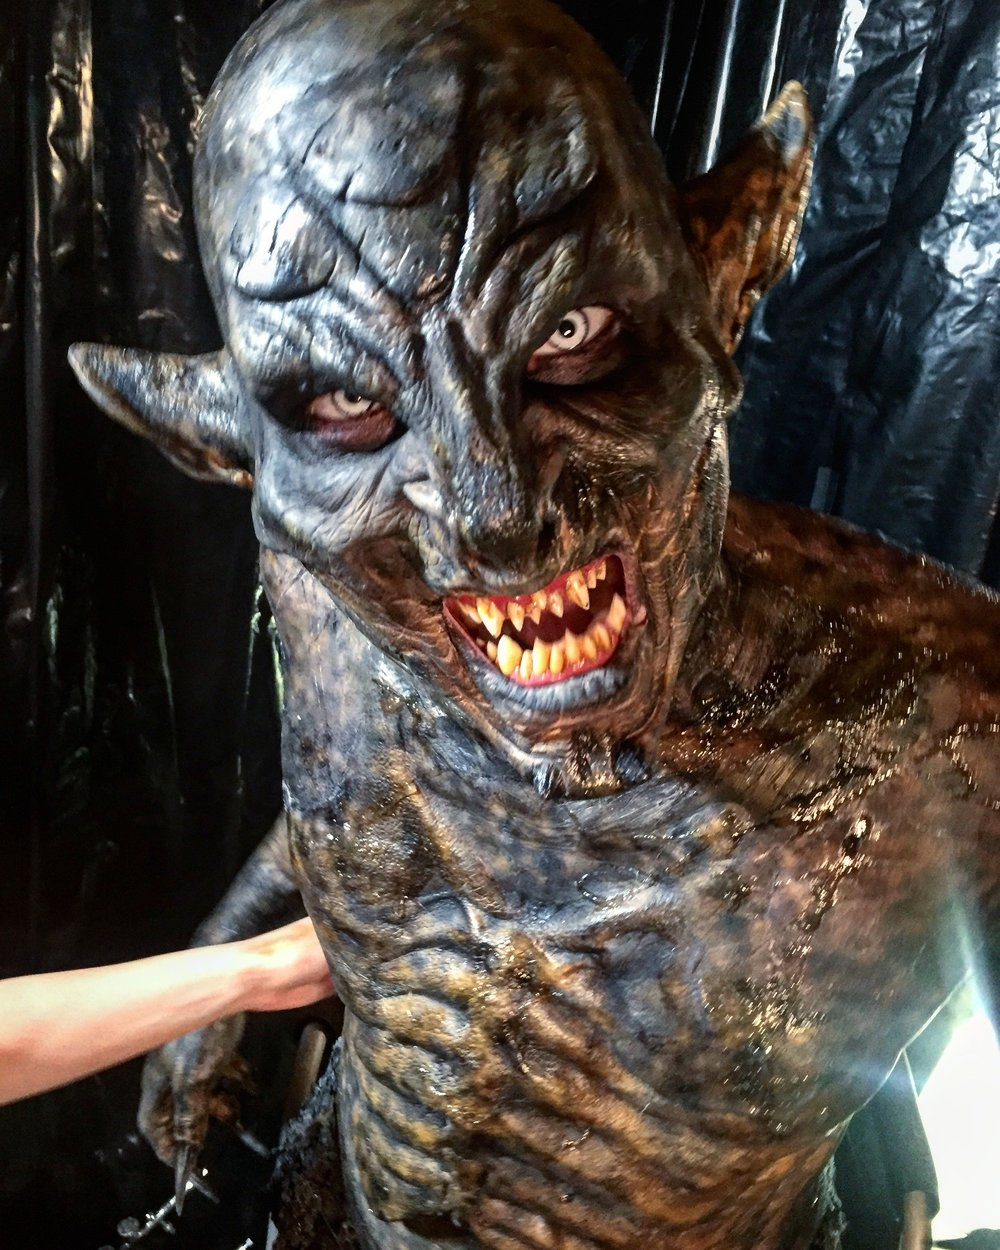 Head Makeup Artist and Designer for The Woods Monster. FX Team: Melanie Aksamit, Oasis Nguyen and Brittany Fontaine